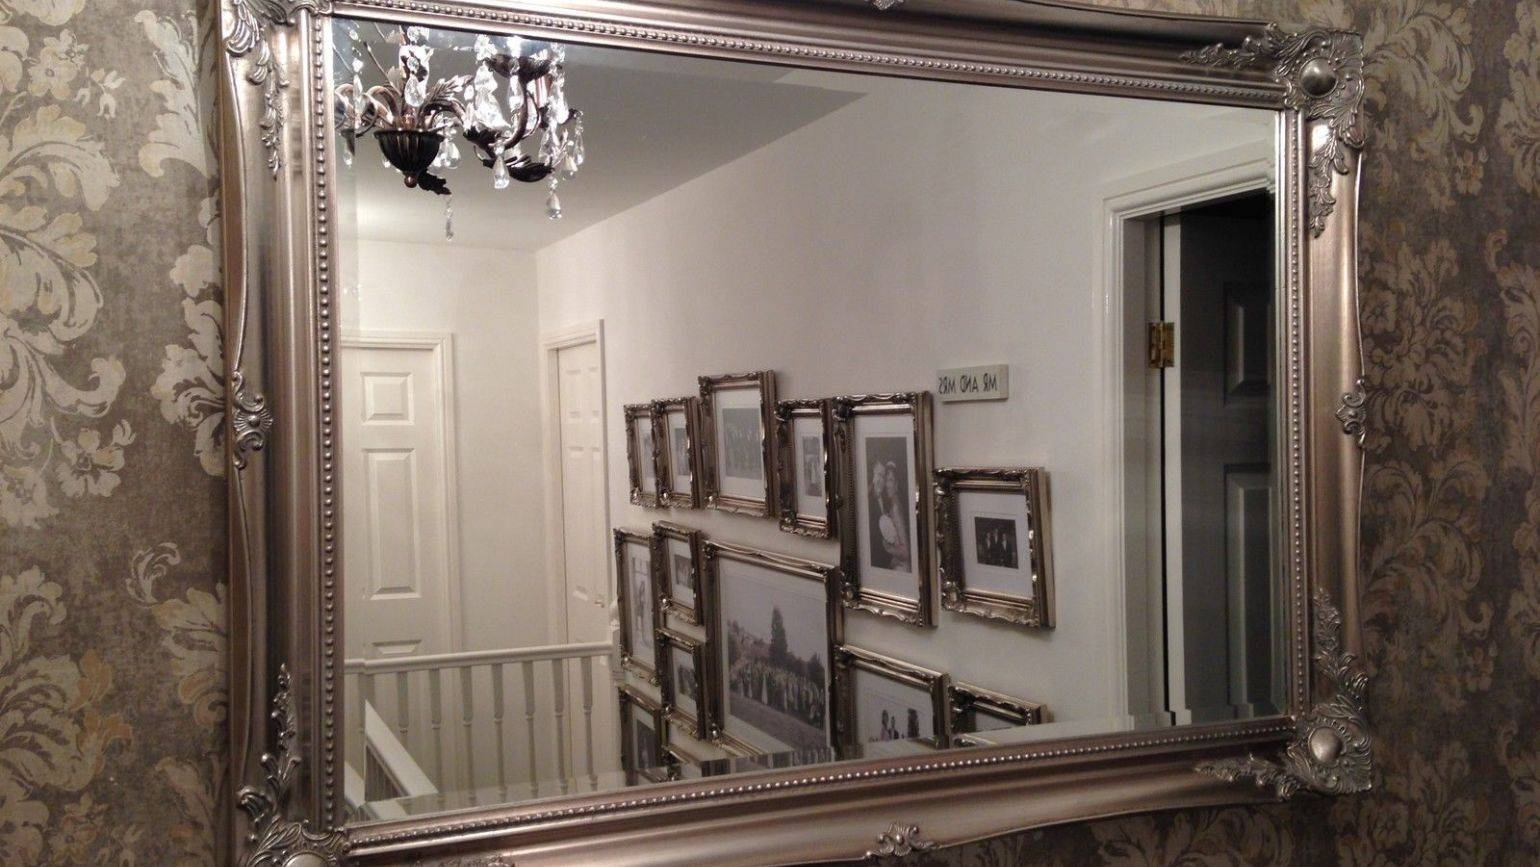 Mirror : Wonderful Big Antique Mirror Ornate Wooden Mirror In Four with regard to Ornate Antique Mirrors (Image 14 of 15)